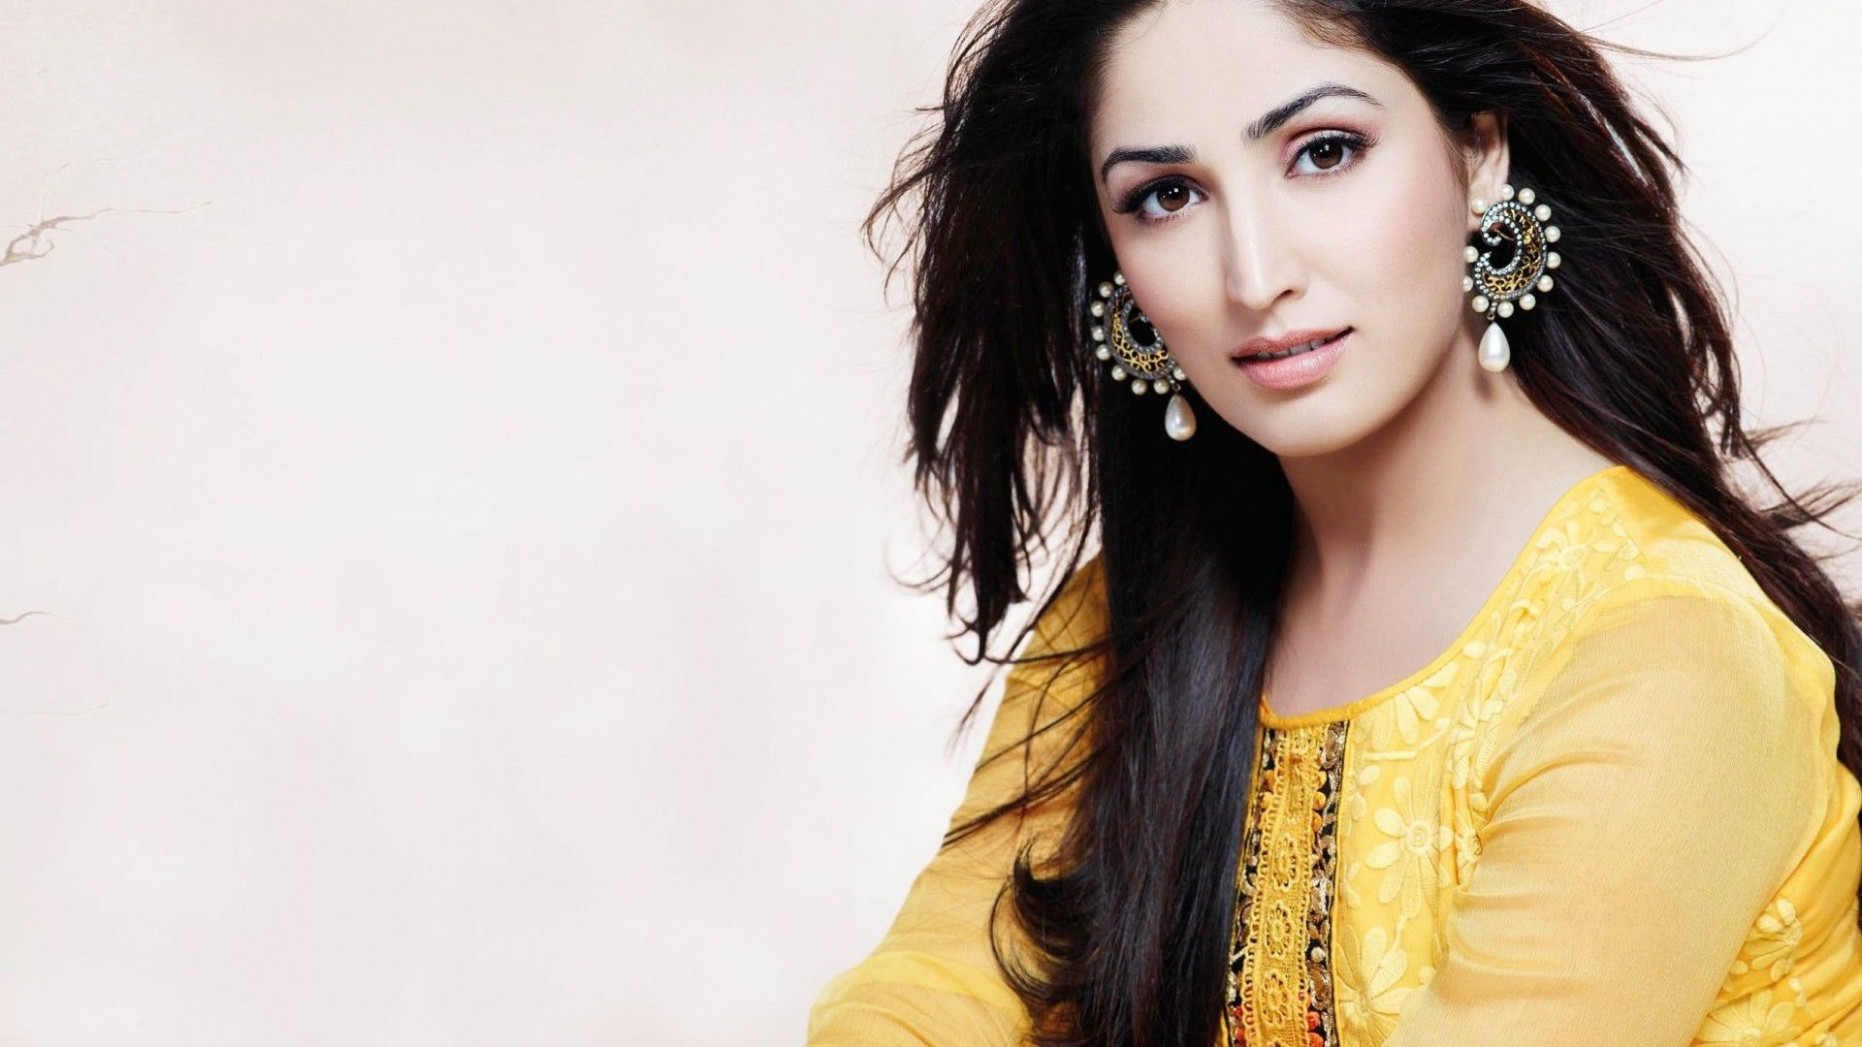 Wonderful bollywood actress hd wallpapers 1366x768 On ...